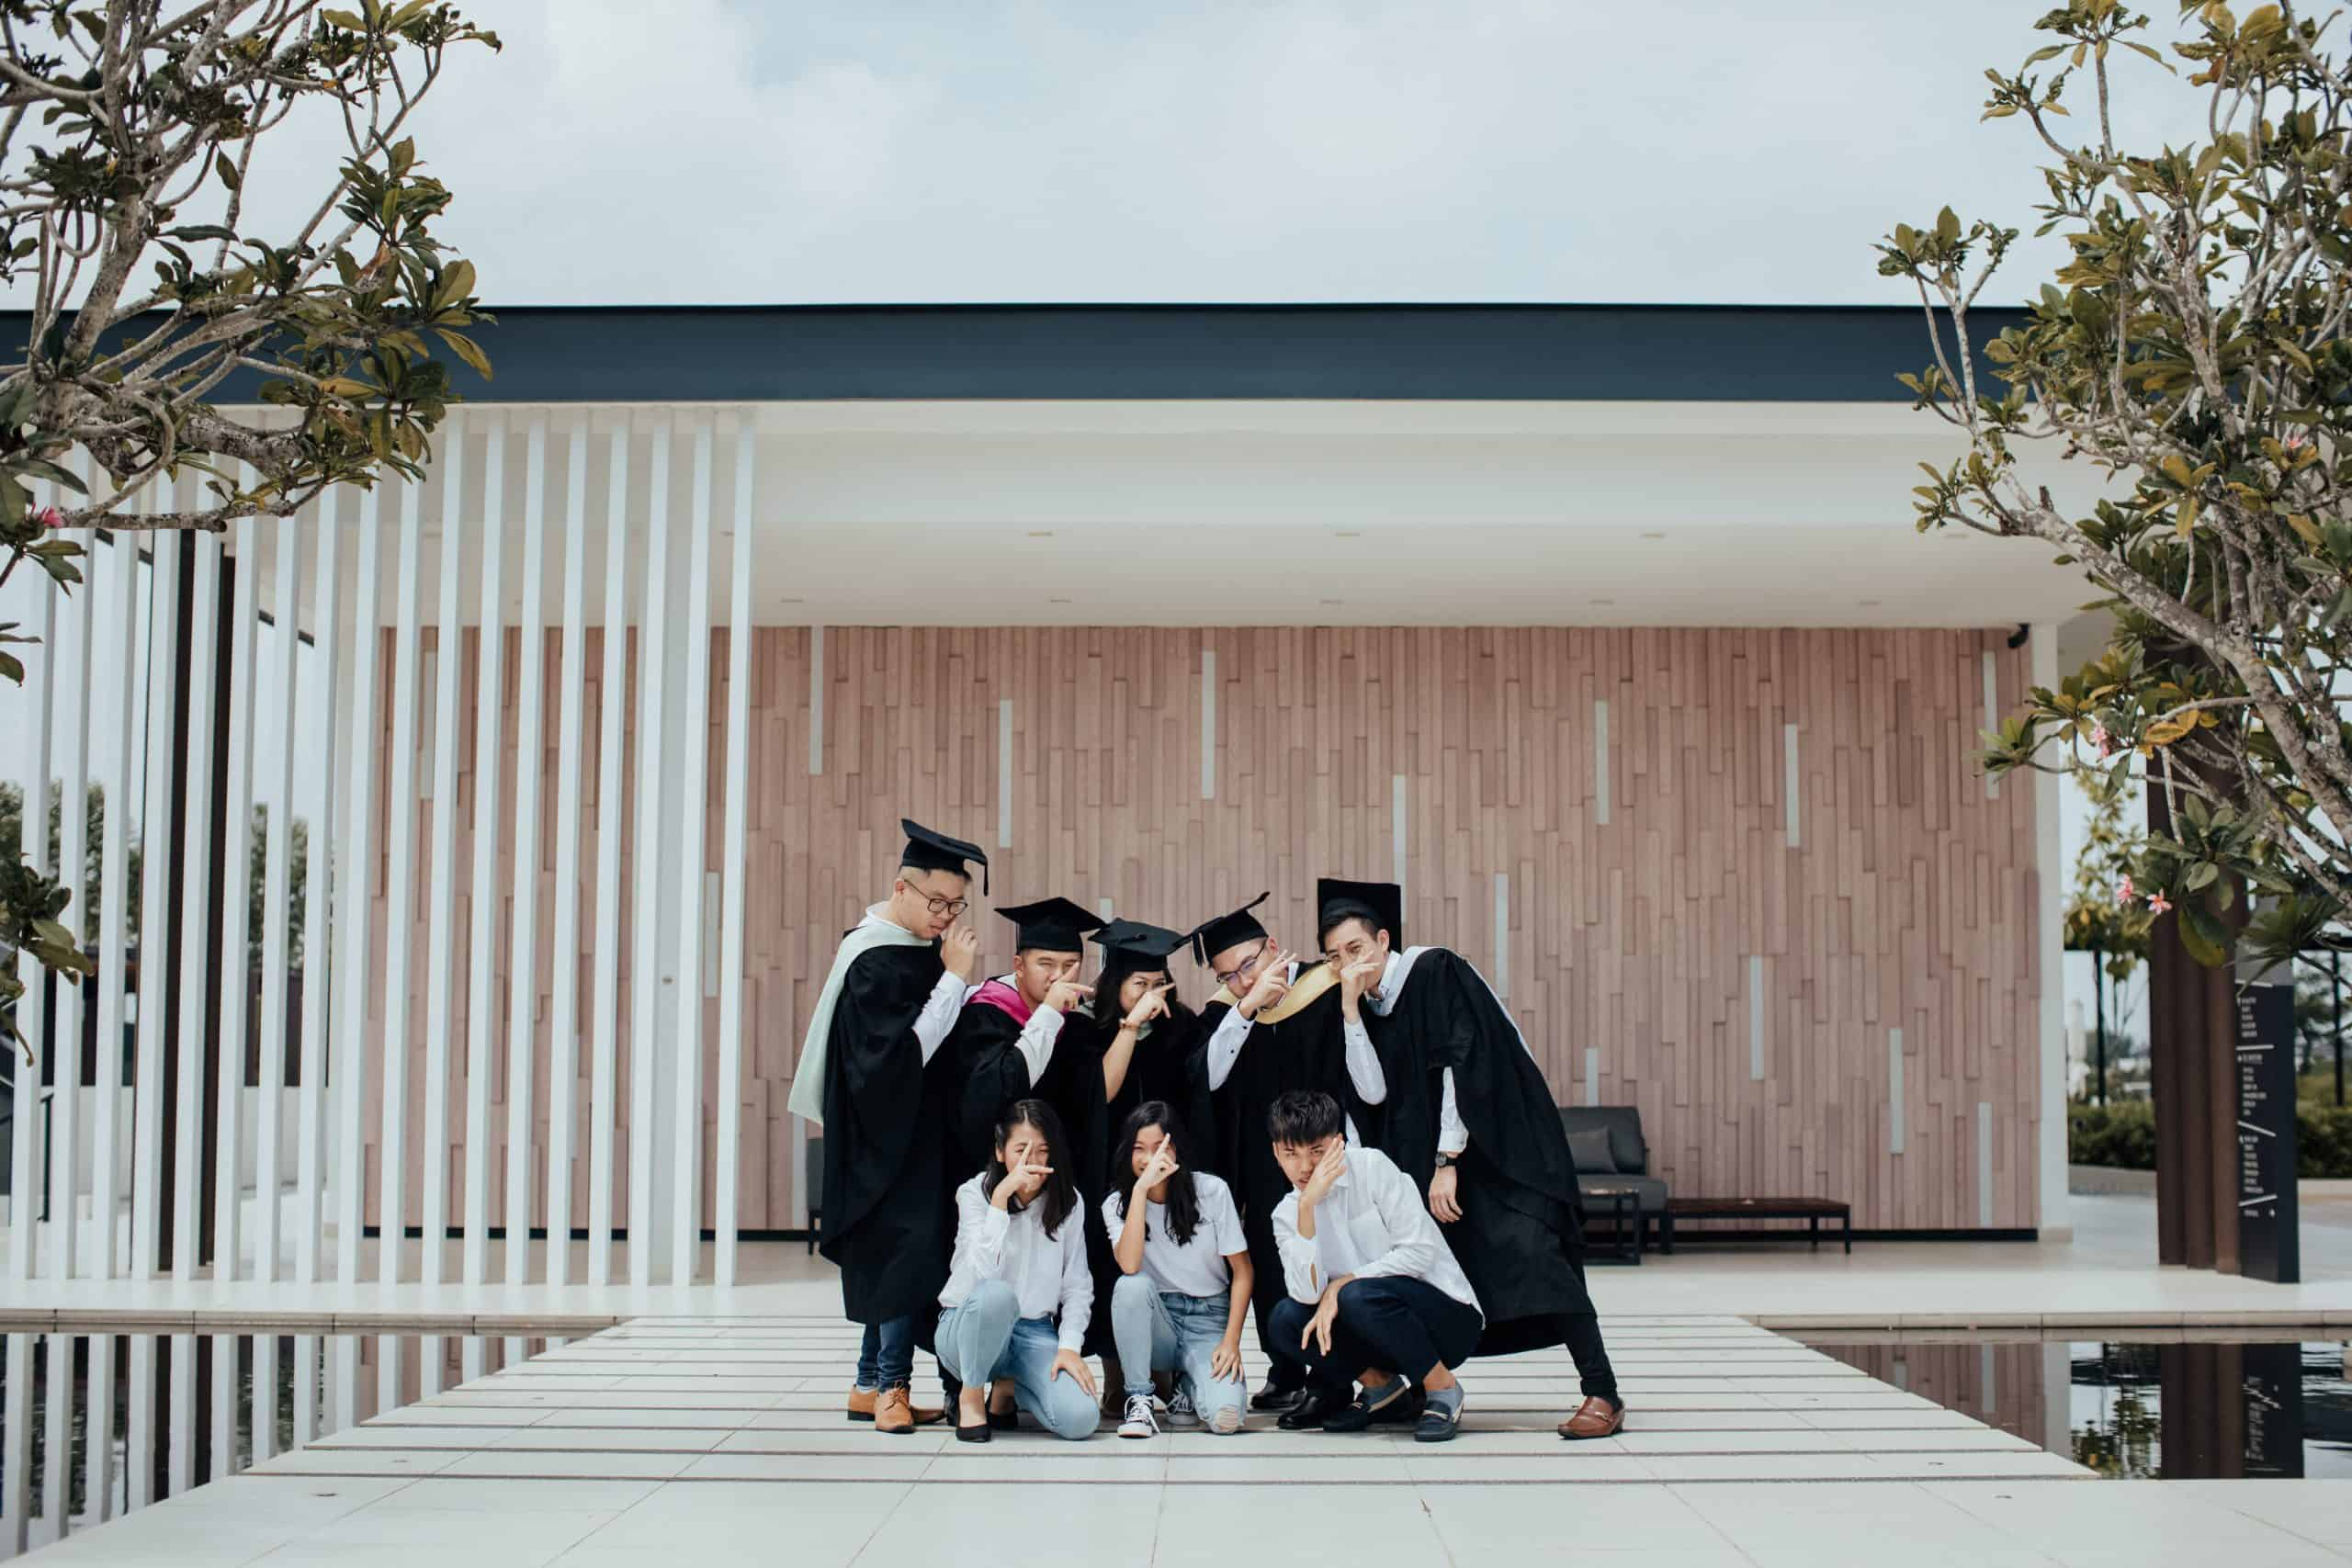 Kuala Lumpur Outdoor Casual Leisure Happy Family and post-graduation Portrait Sesson